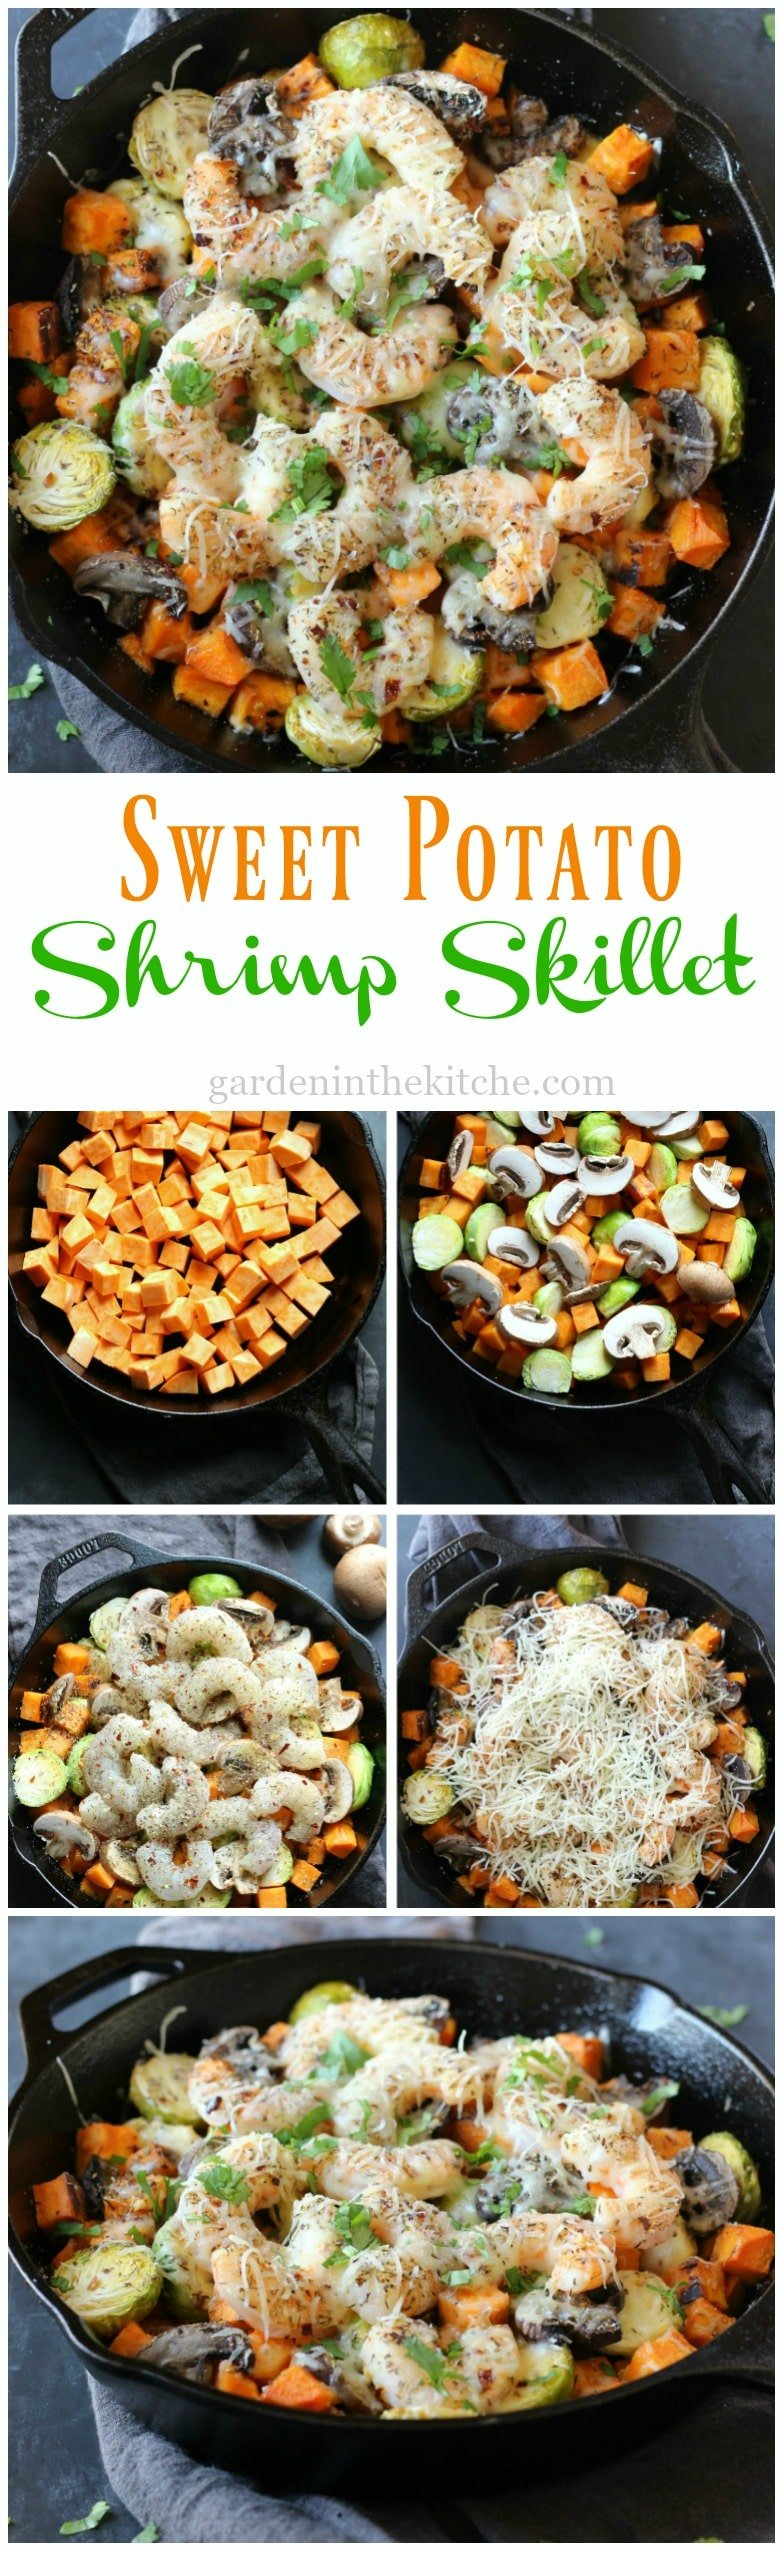 Sweet Potato Shrimp Skillet | gardeninthekitchen.com